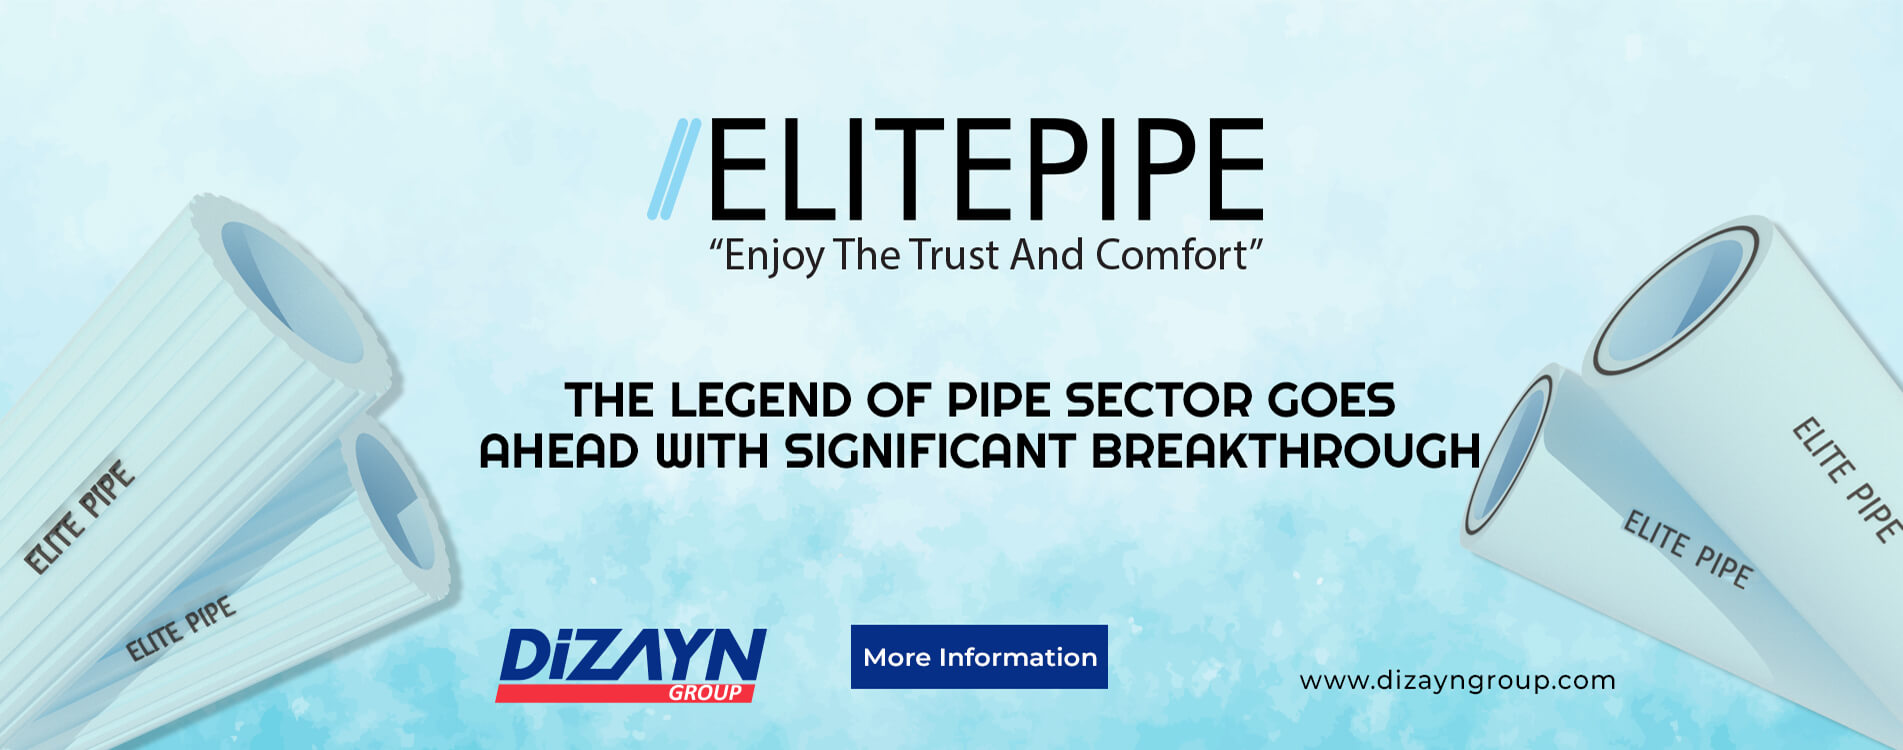 Dizayn Elite Pipe